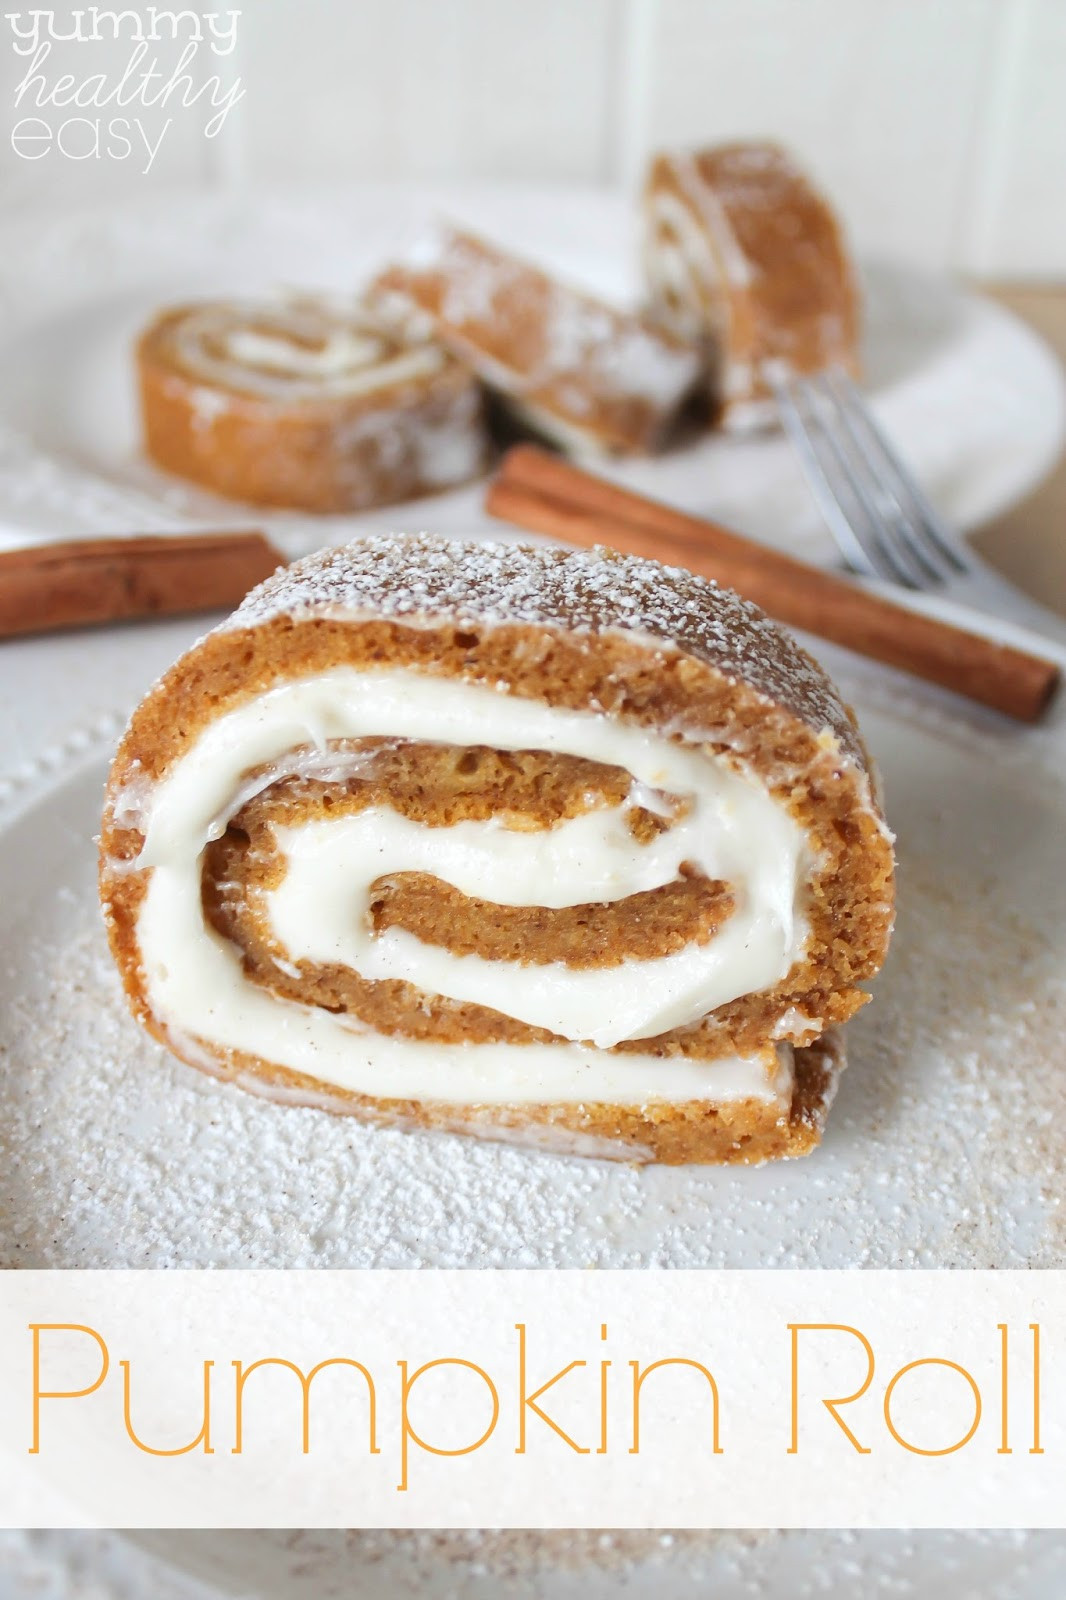 Easy Pumpkin Desserts  Easy Pumpkin Roll Dessert Yummy Healthy Easy